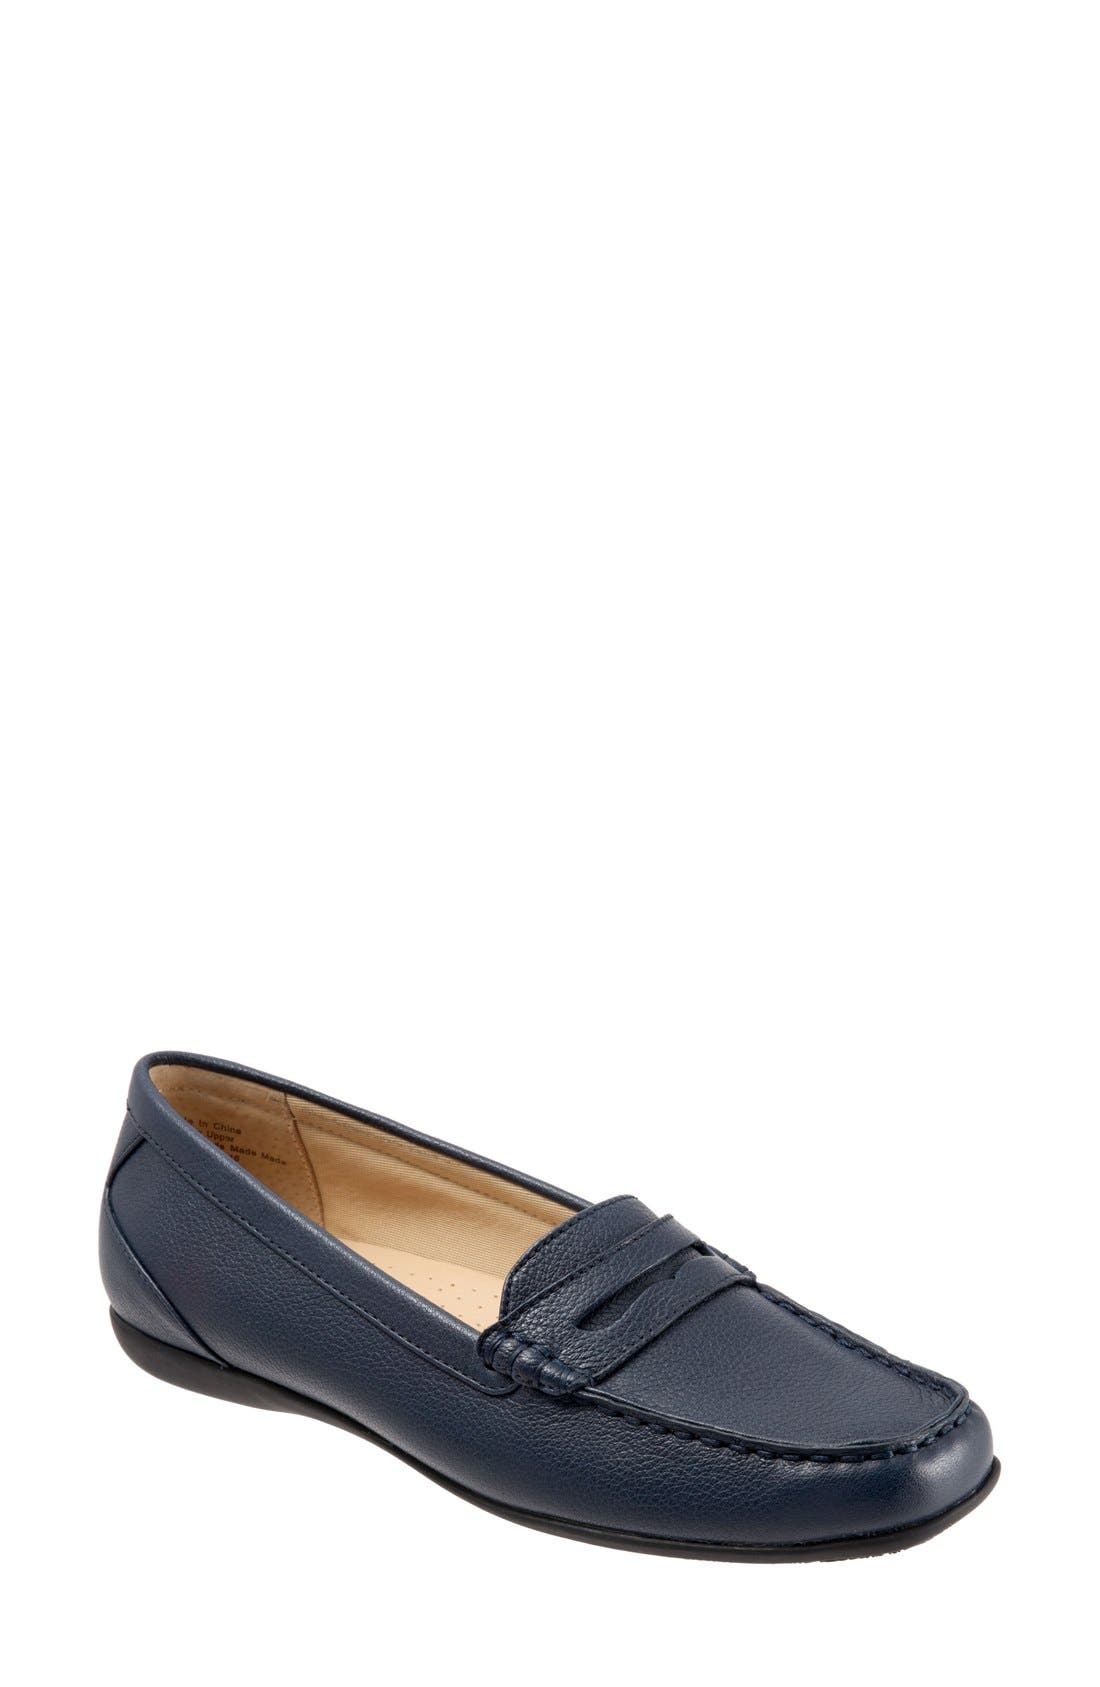 'Staci' Penny Loafer,                         Main,                         color, Navy Leather